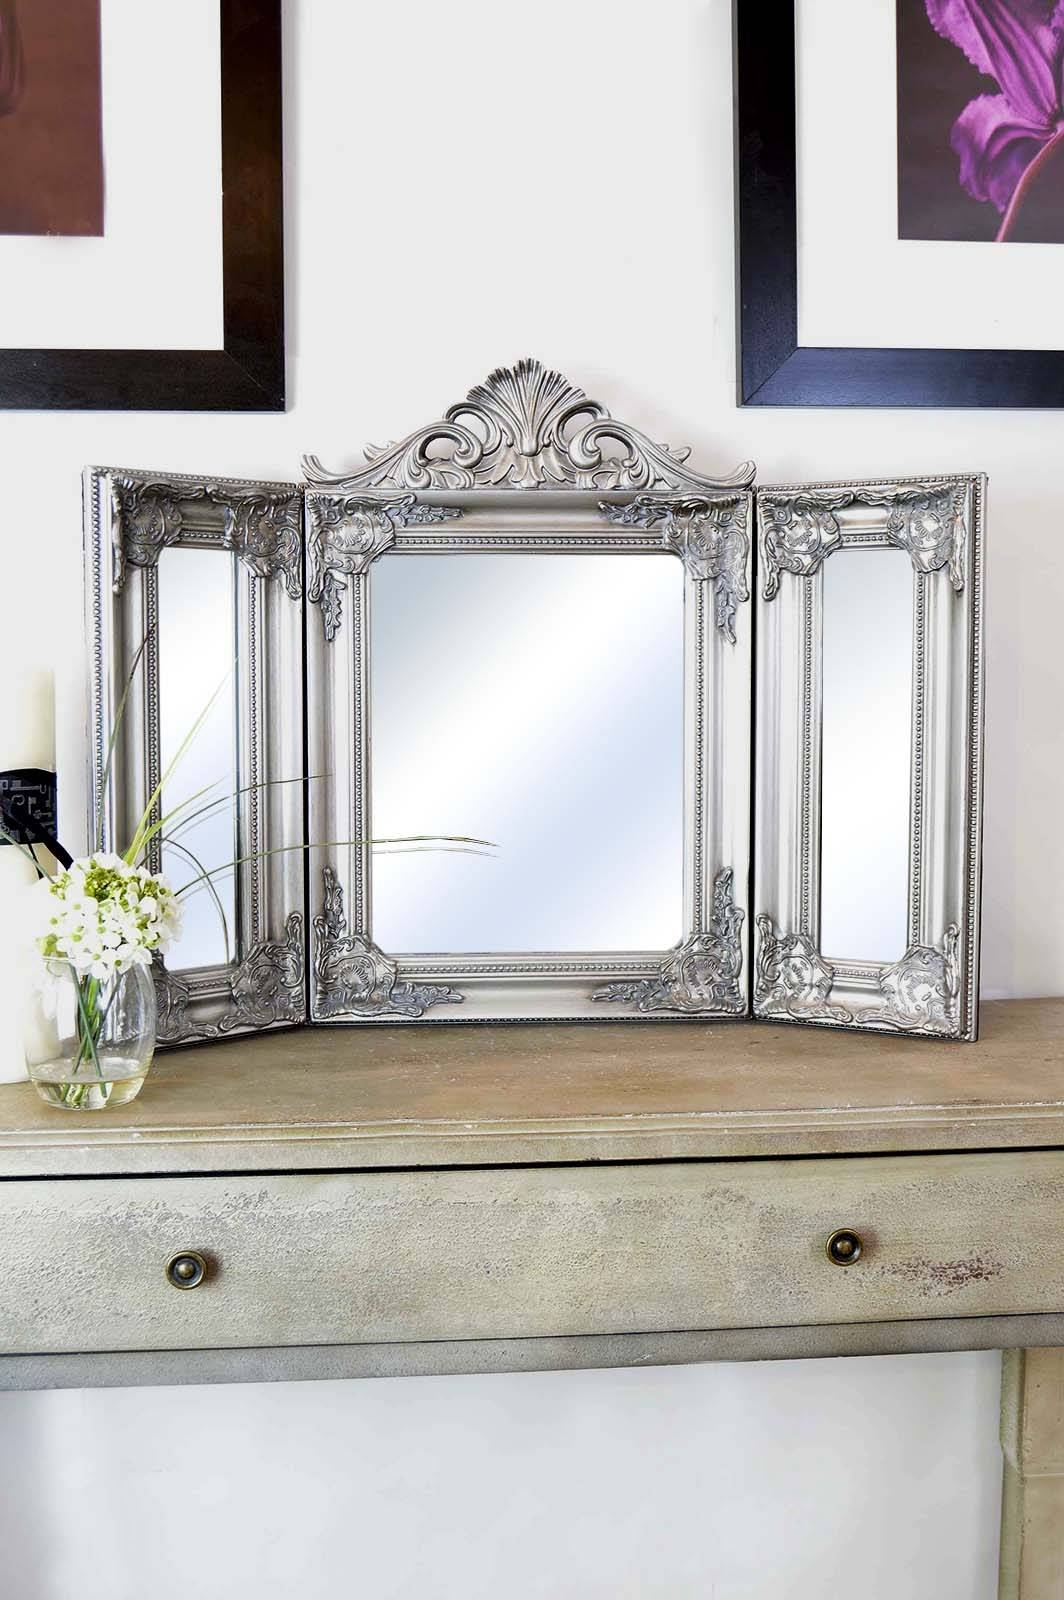 Elegant Silver Antique Style Design Free Standing Dressing Table intended for Free Standing Table Mirrors (Image 2 of 15)